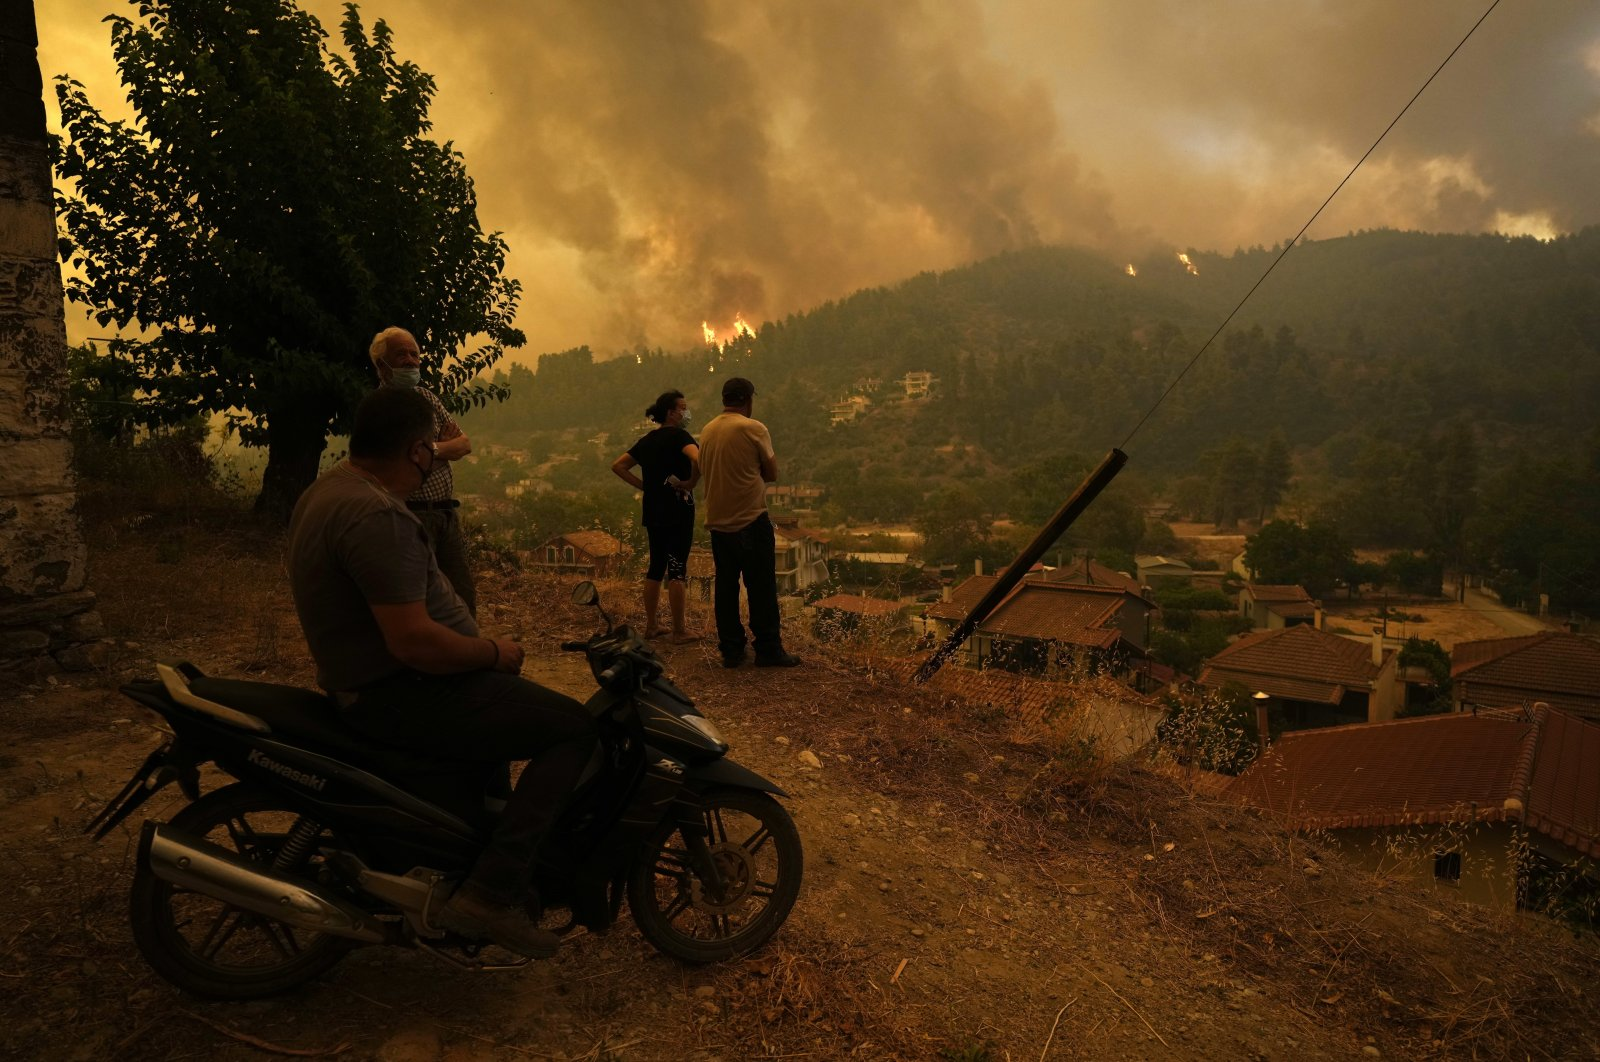 Local residents stand on a hill as flames approaching at Gouves village on the island of Evia, about 185 kilometers (115 miles) north of Athens, Greece, Aug. 8, 2021. (AP Photo)